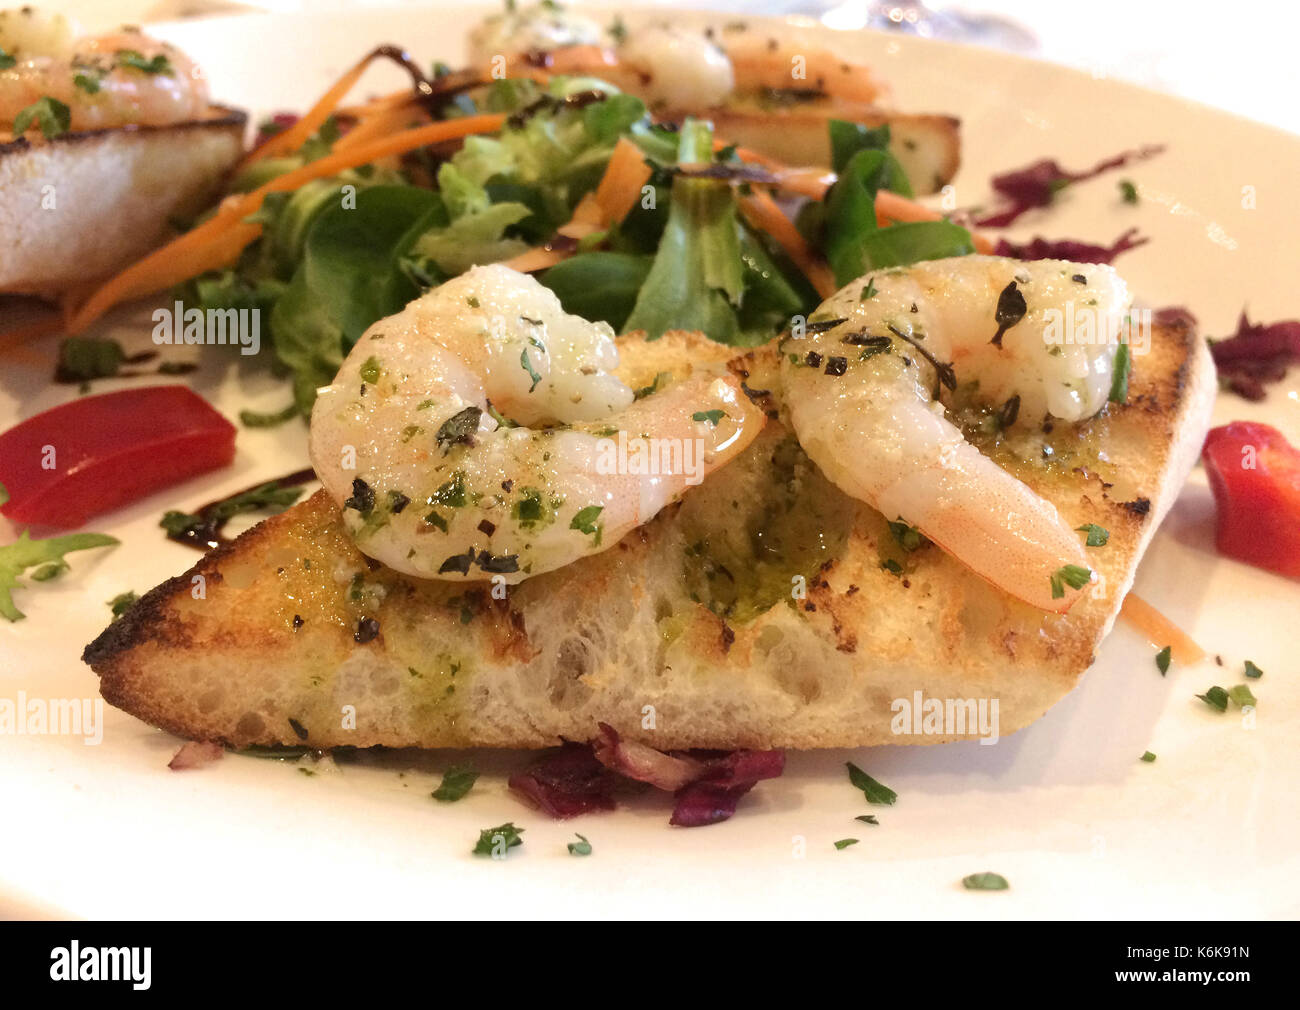 Italian Starter - Bruschetta Con Gamberetti - Marinated tiger prawns with garlic, basil and olive oil on toasted bread - Stock Image